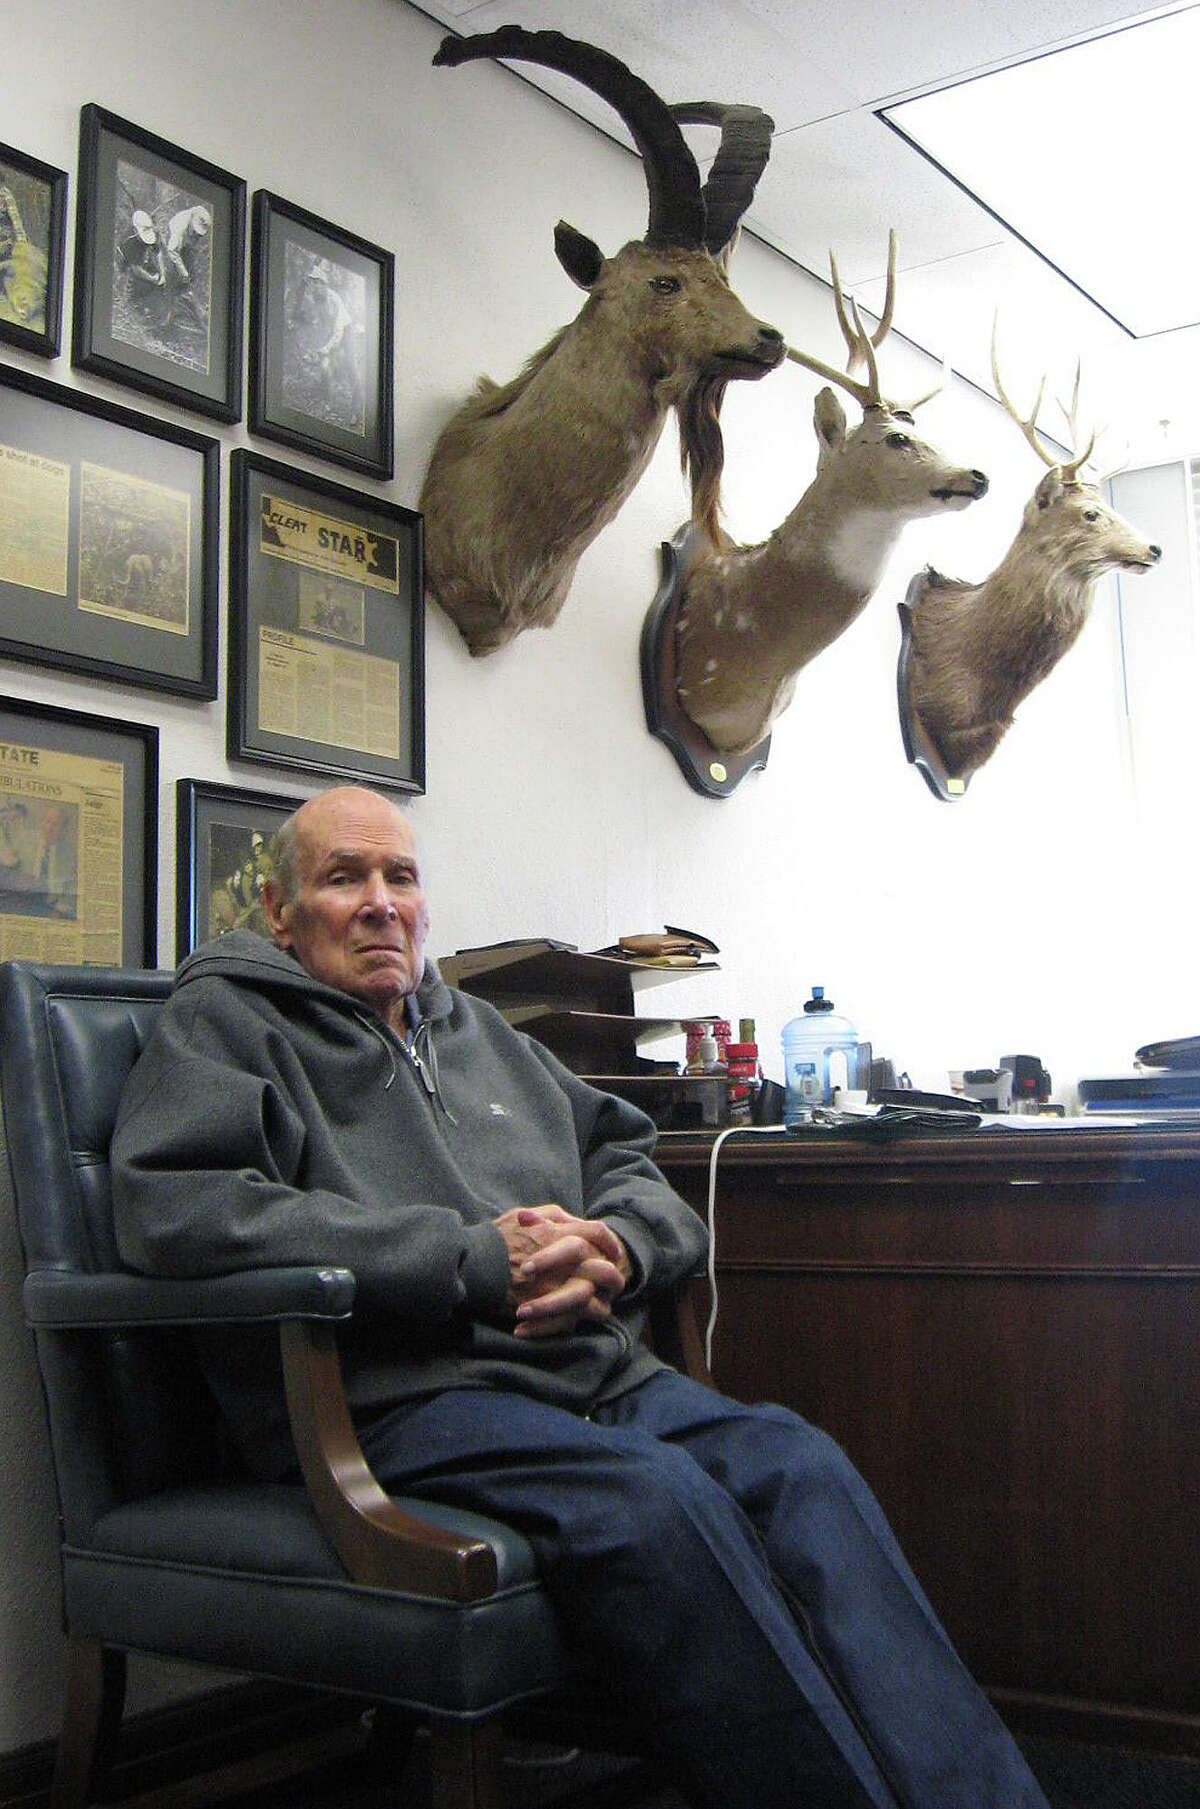 County Court at Law 1 Judge Al Gerson announced his retirement after 27 years on the bench. Gerson, 87, got his law license in 1953. He is seen here in his chambers with some of his hunting trophies. Enterprise file photo